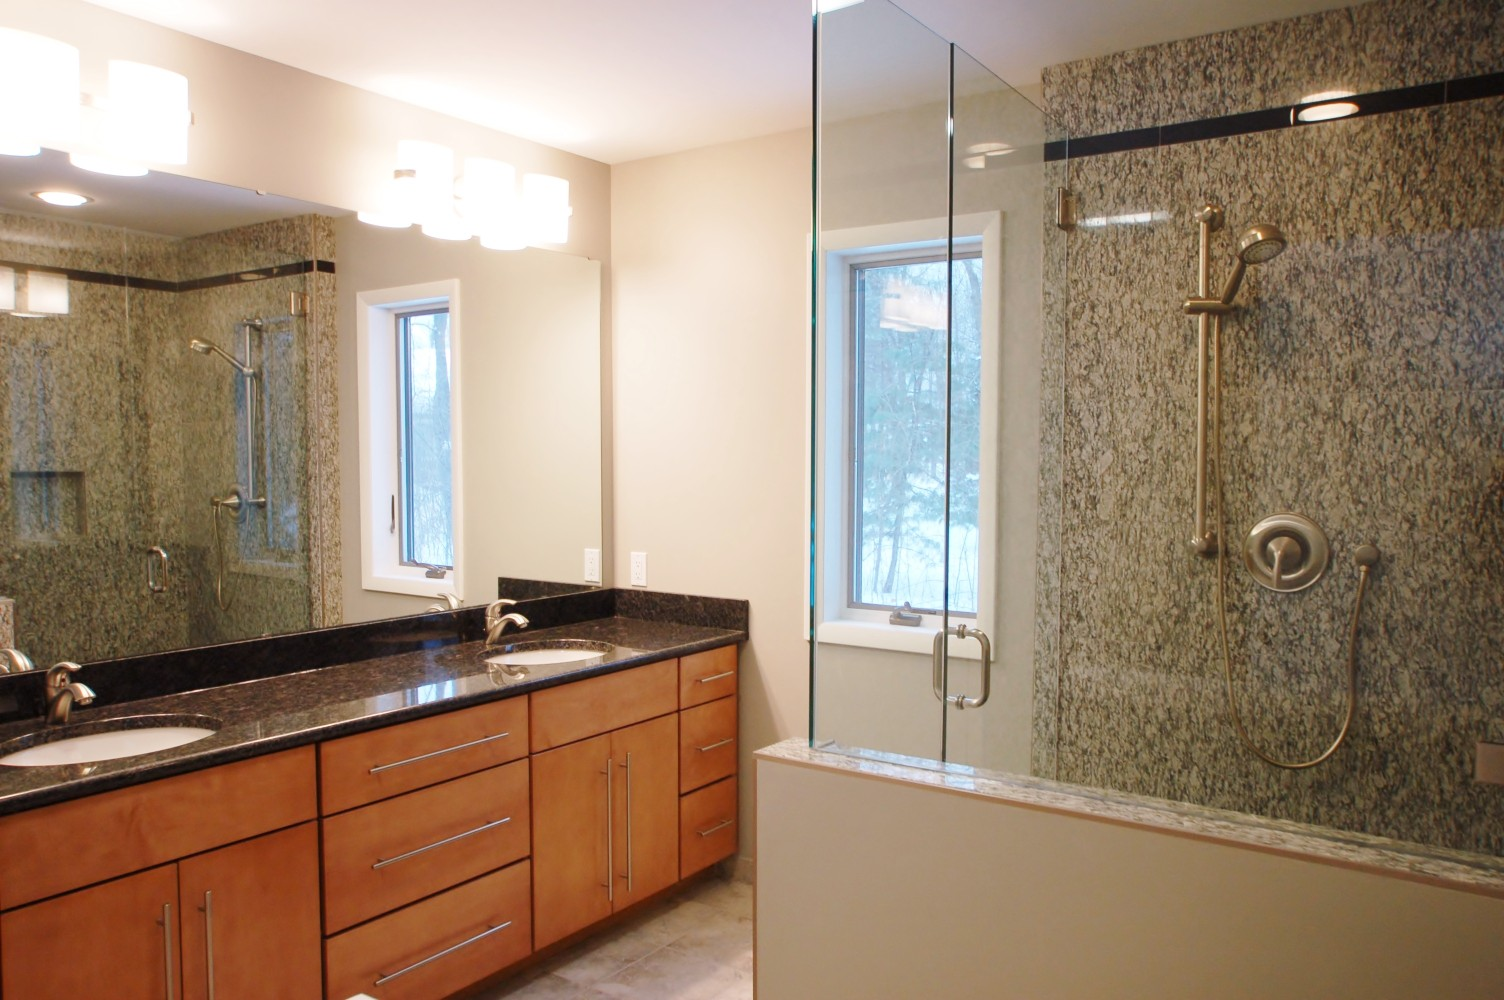 bathroom and kitchen remodeling services in midland mi